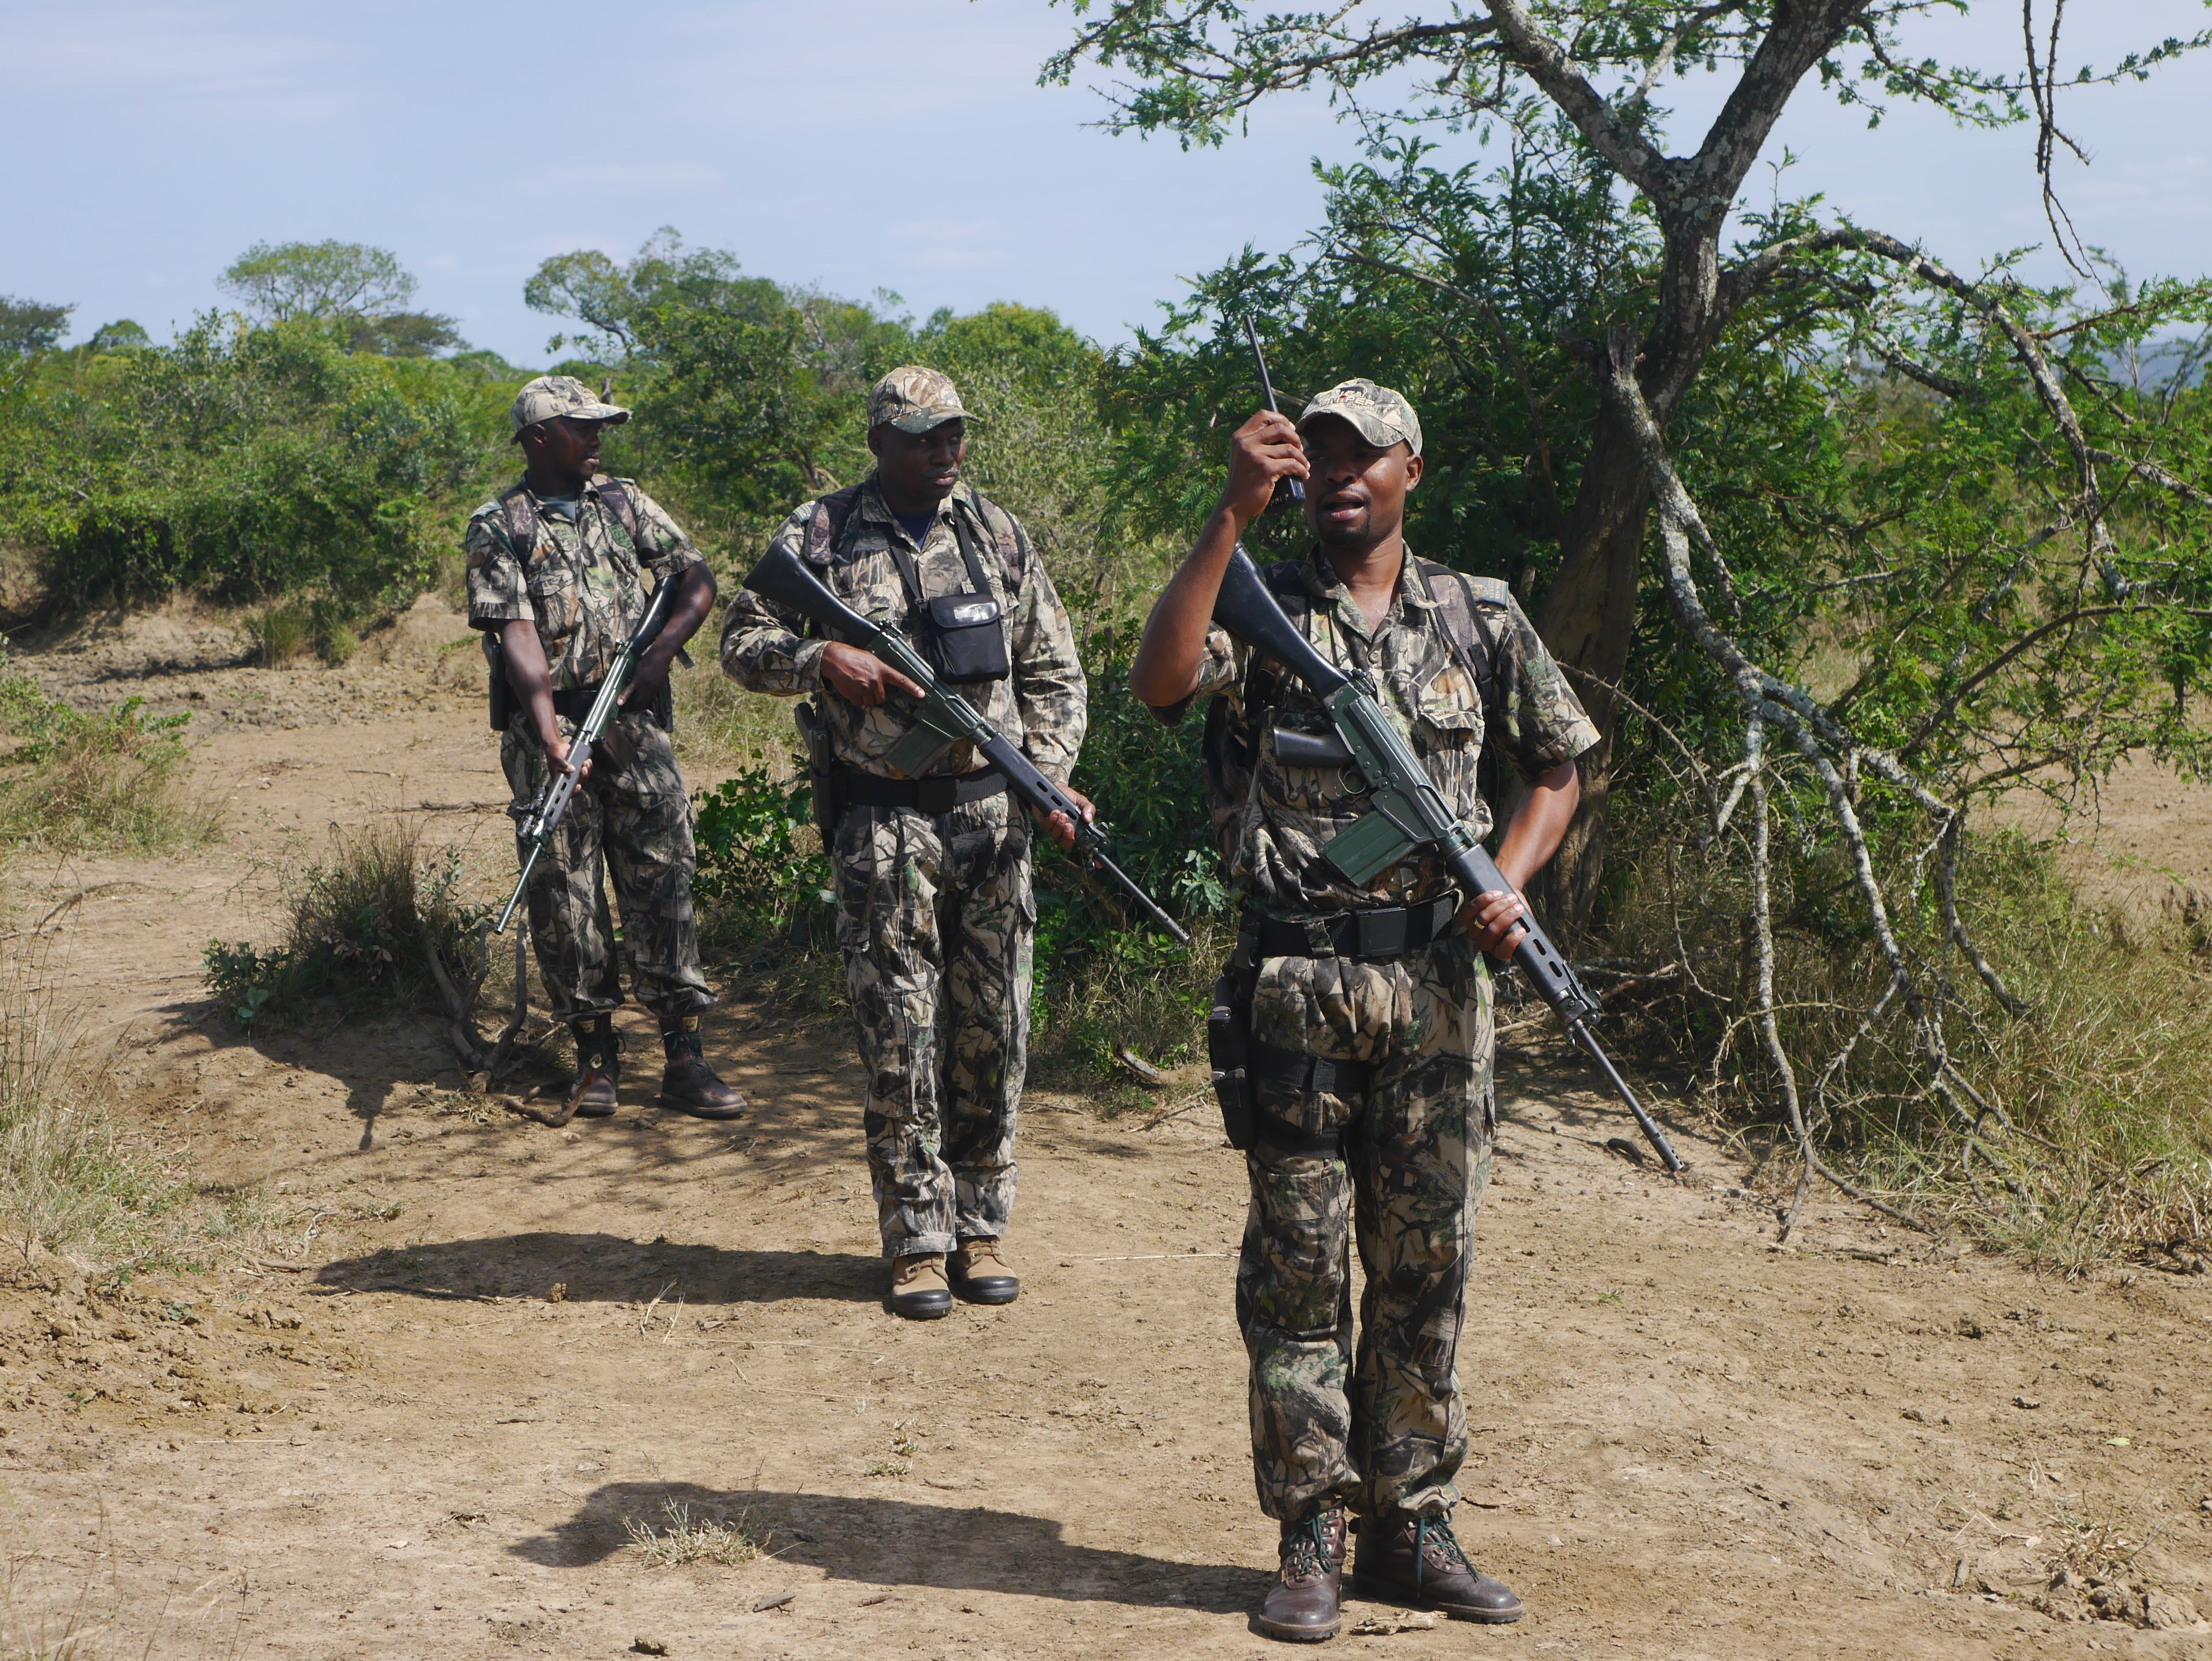 Unfortunately it is now such a dangerous job protecting rhinos, many rangers have been killed protecting rhinos